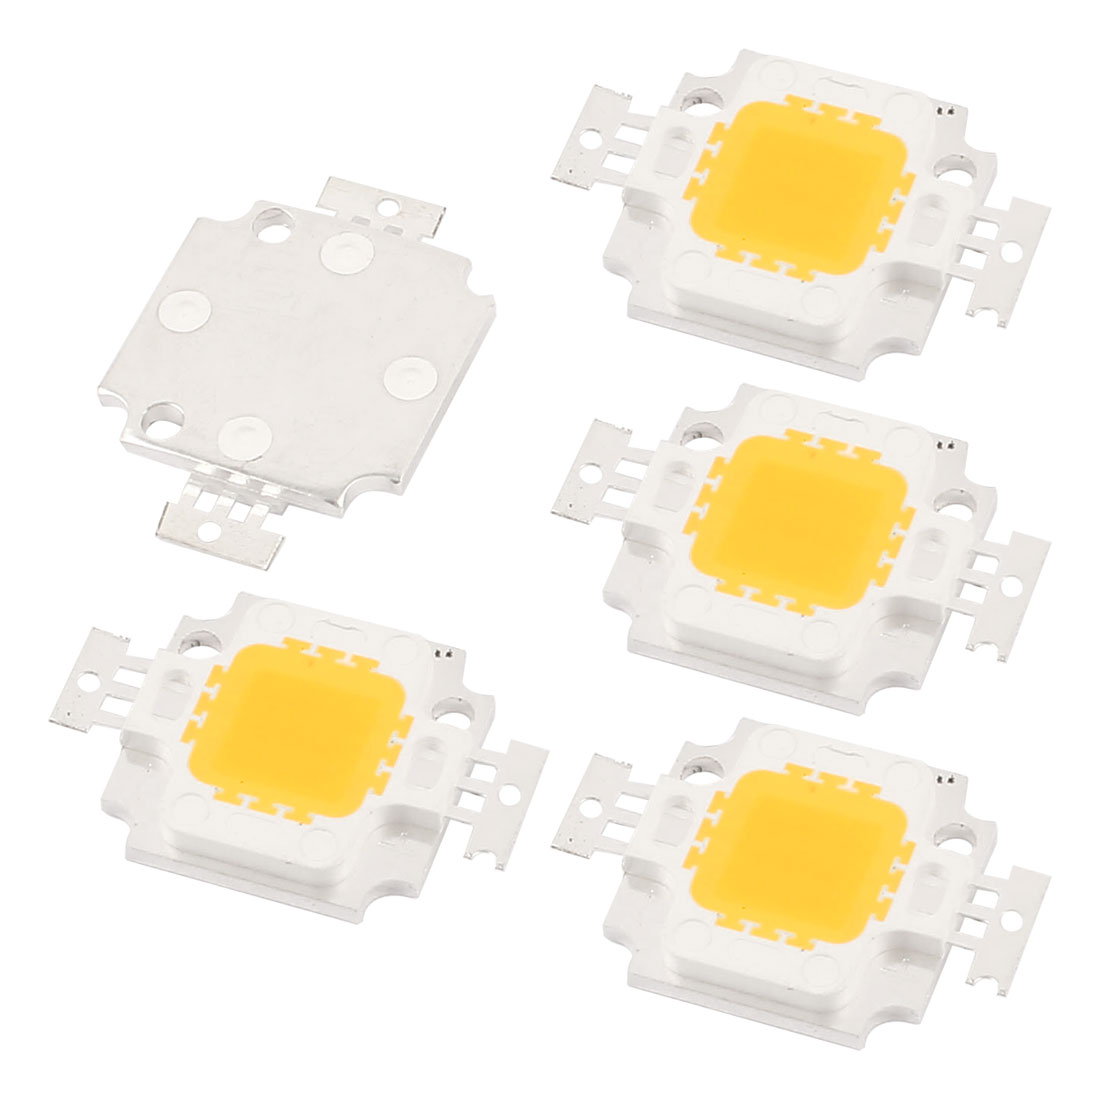 10W DC9-11V 900mA 80-100LM/W Warm White LED Light COB Lamp Bead Chip 5 Pcs